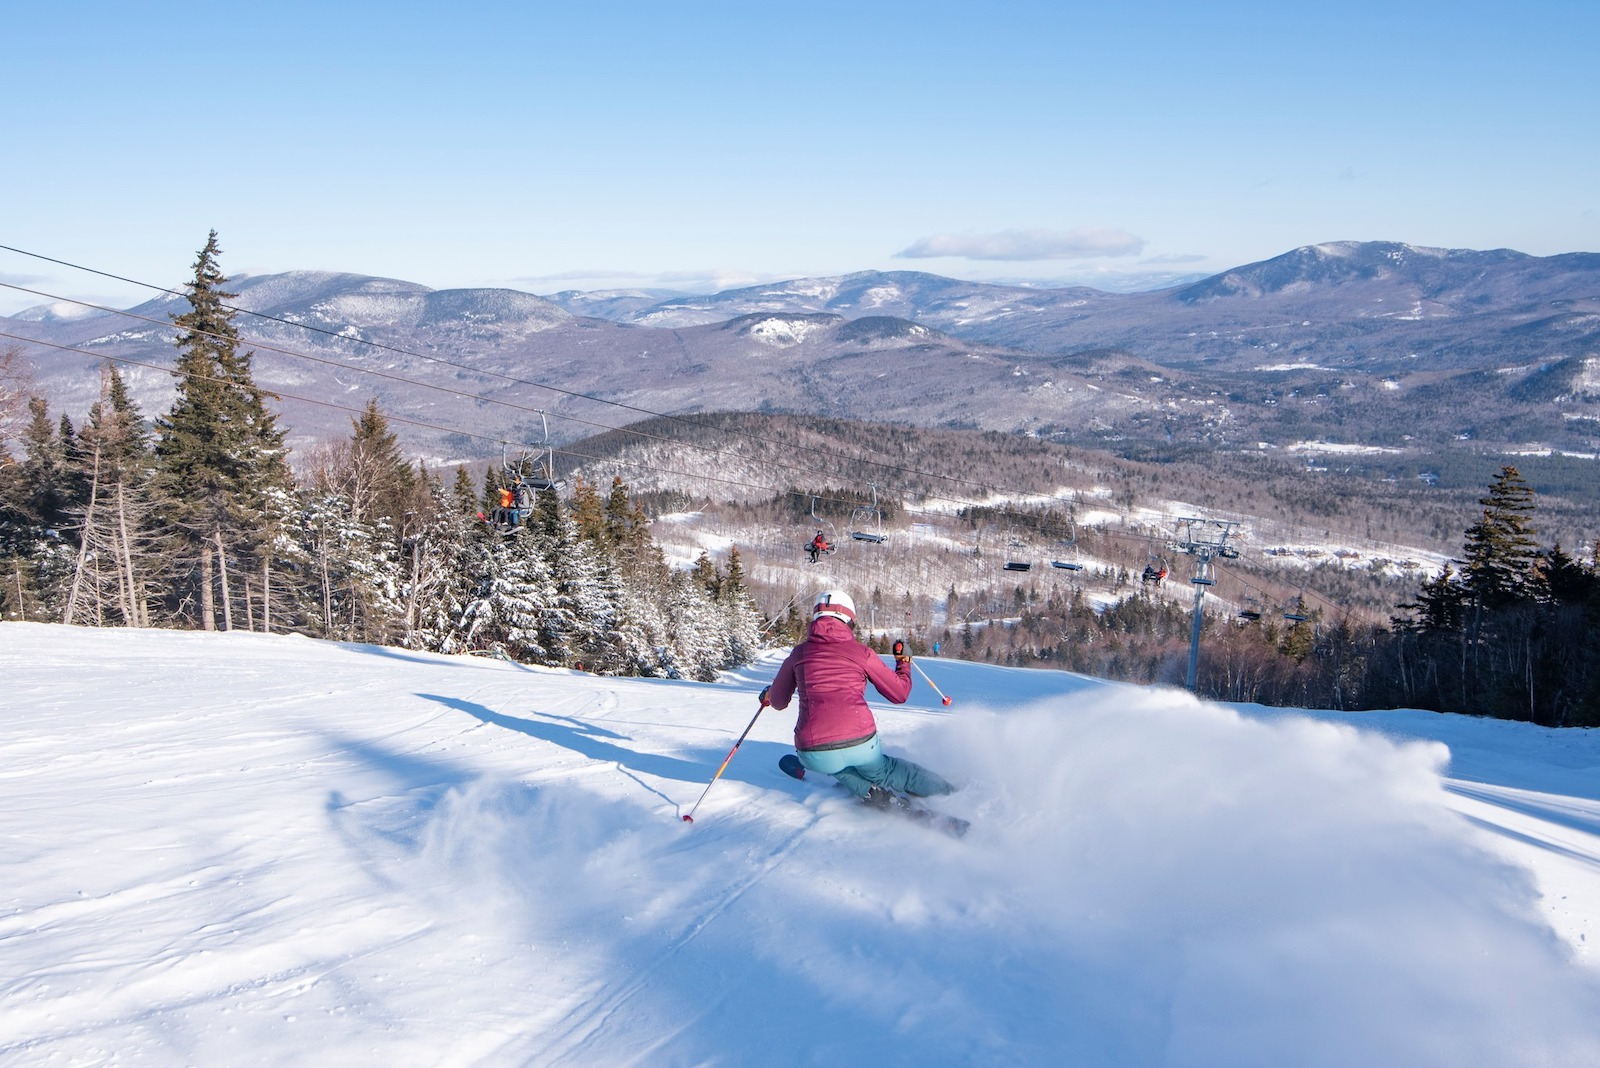 Image of a skier in pink going down the slopes at Sunday River Ski Resort in Maine